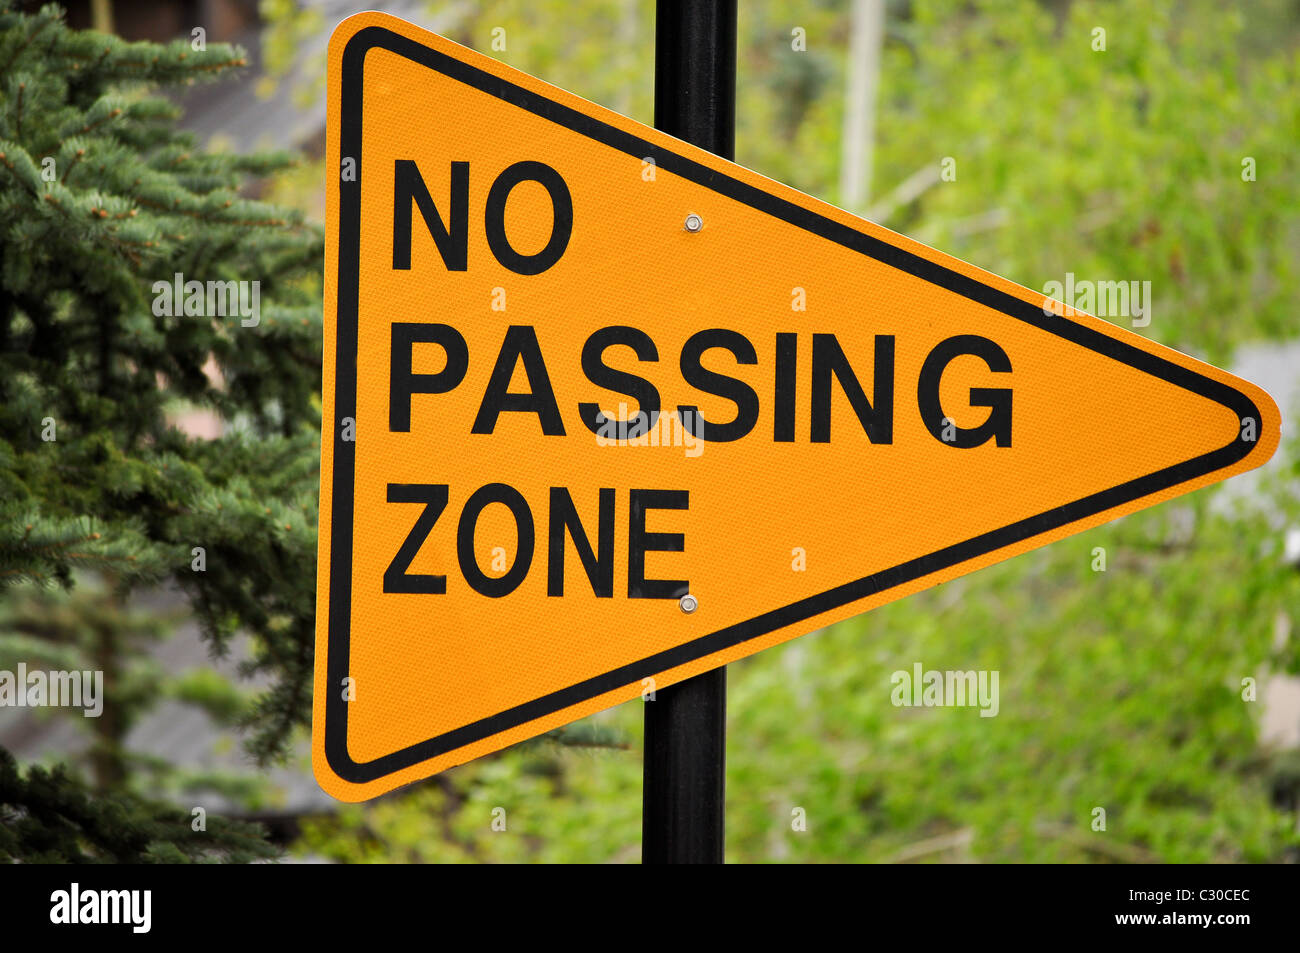 no passing sign - Stock Image